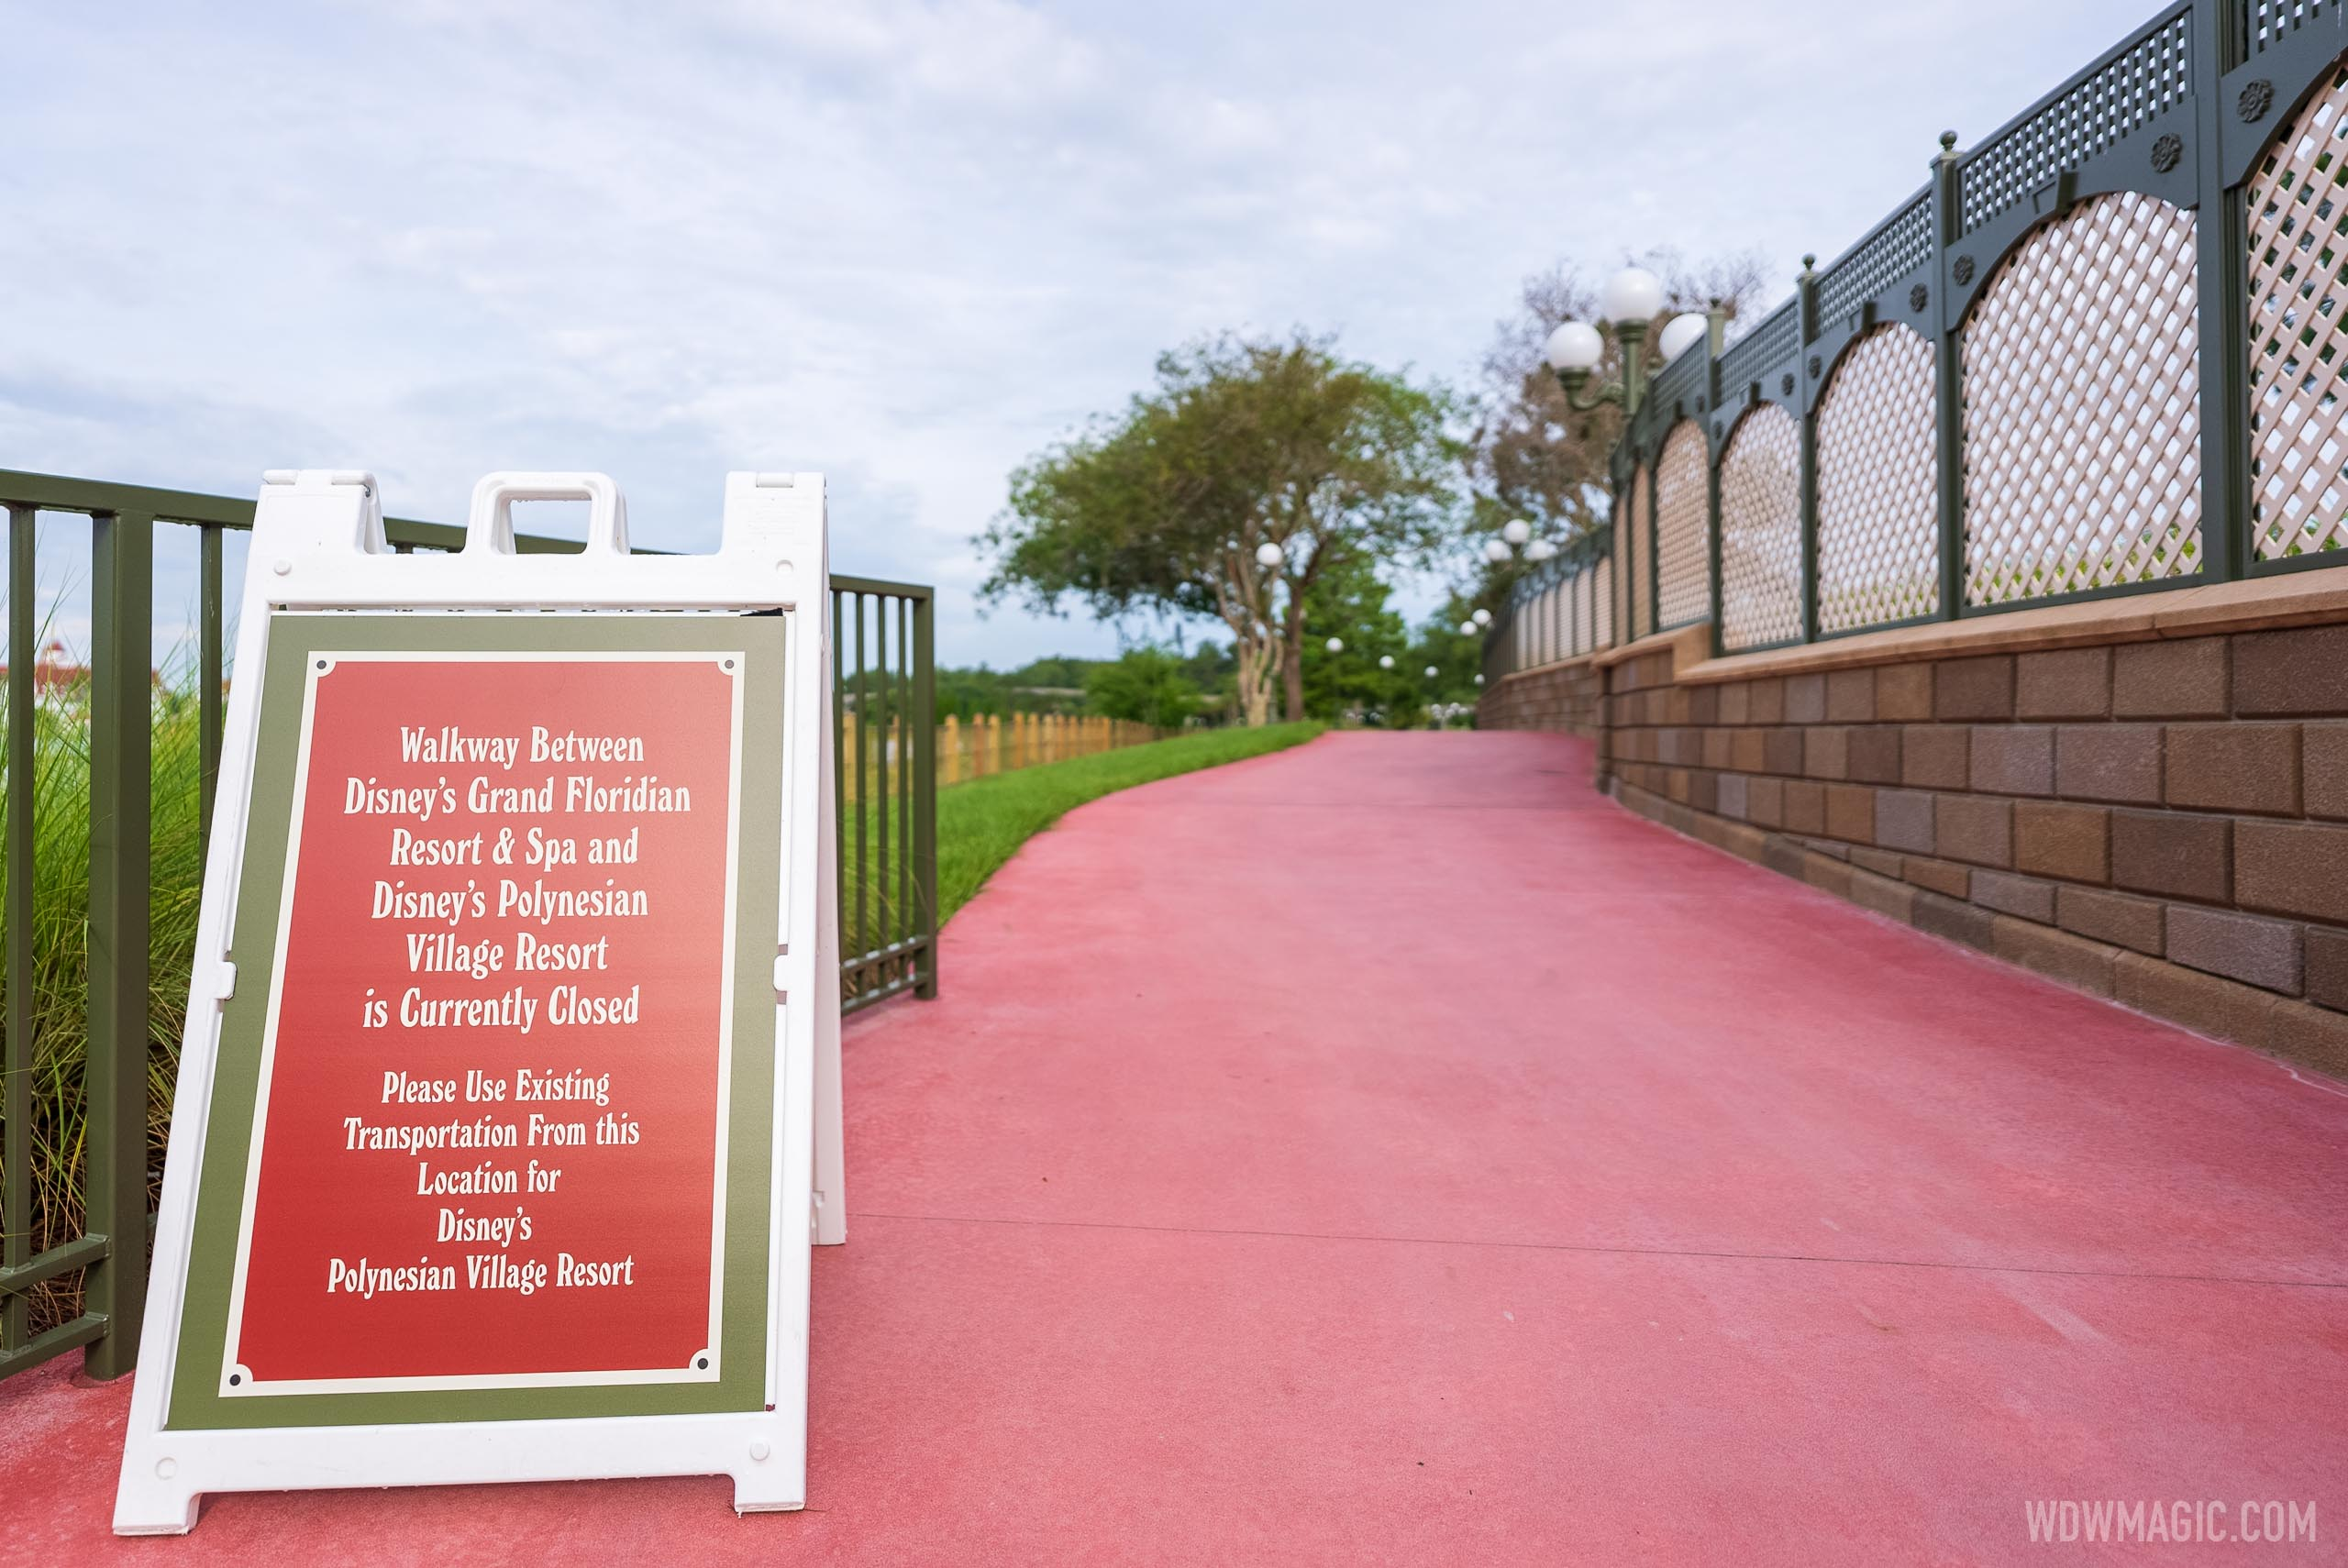 Walkway between Disney's Grand Floridian and Disney's Polynesian Resort currently closed